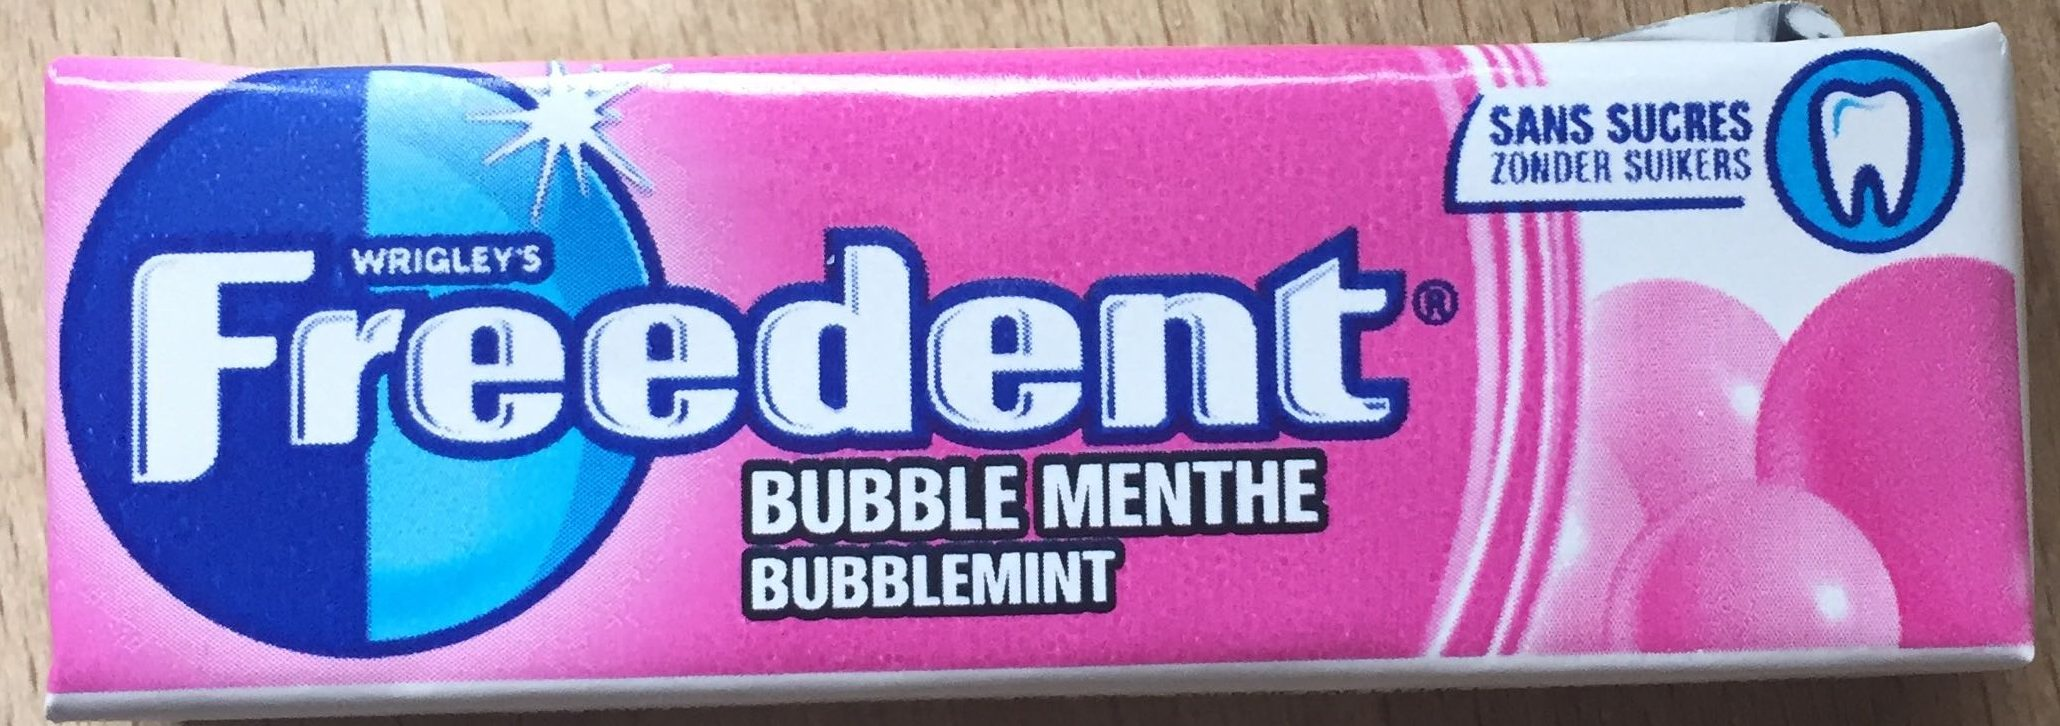 Freedent Bubble Menthe - Product